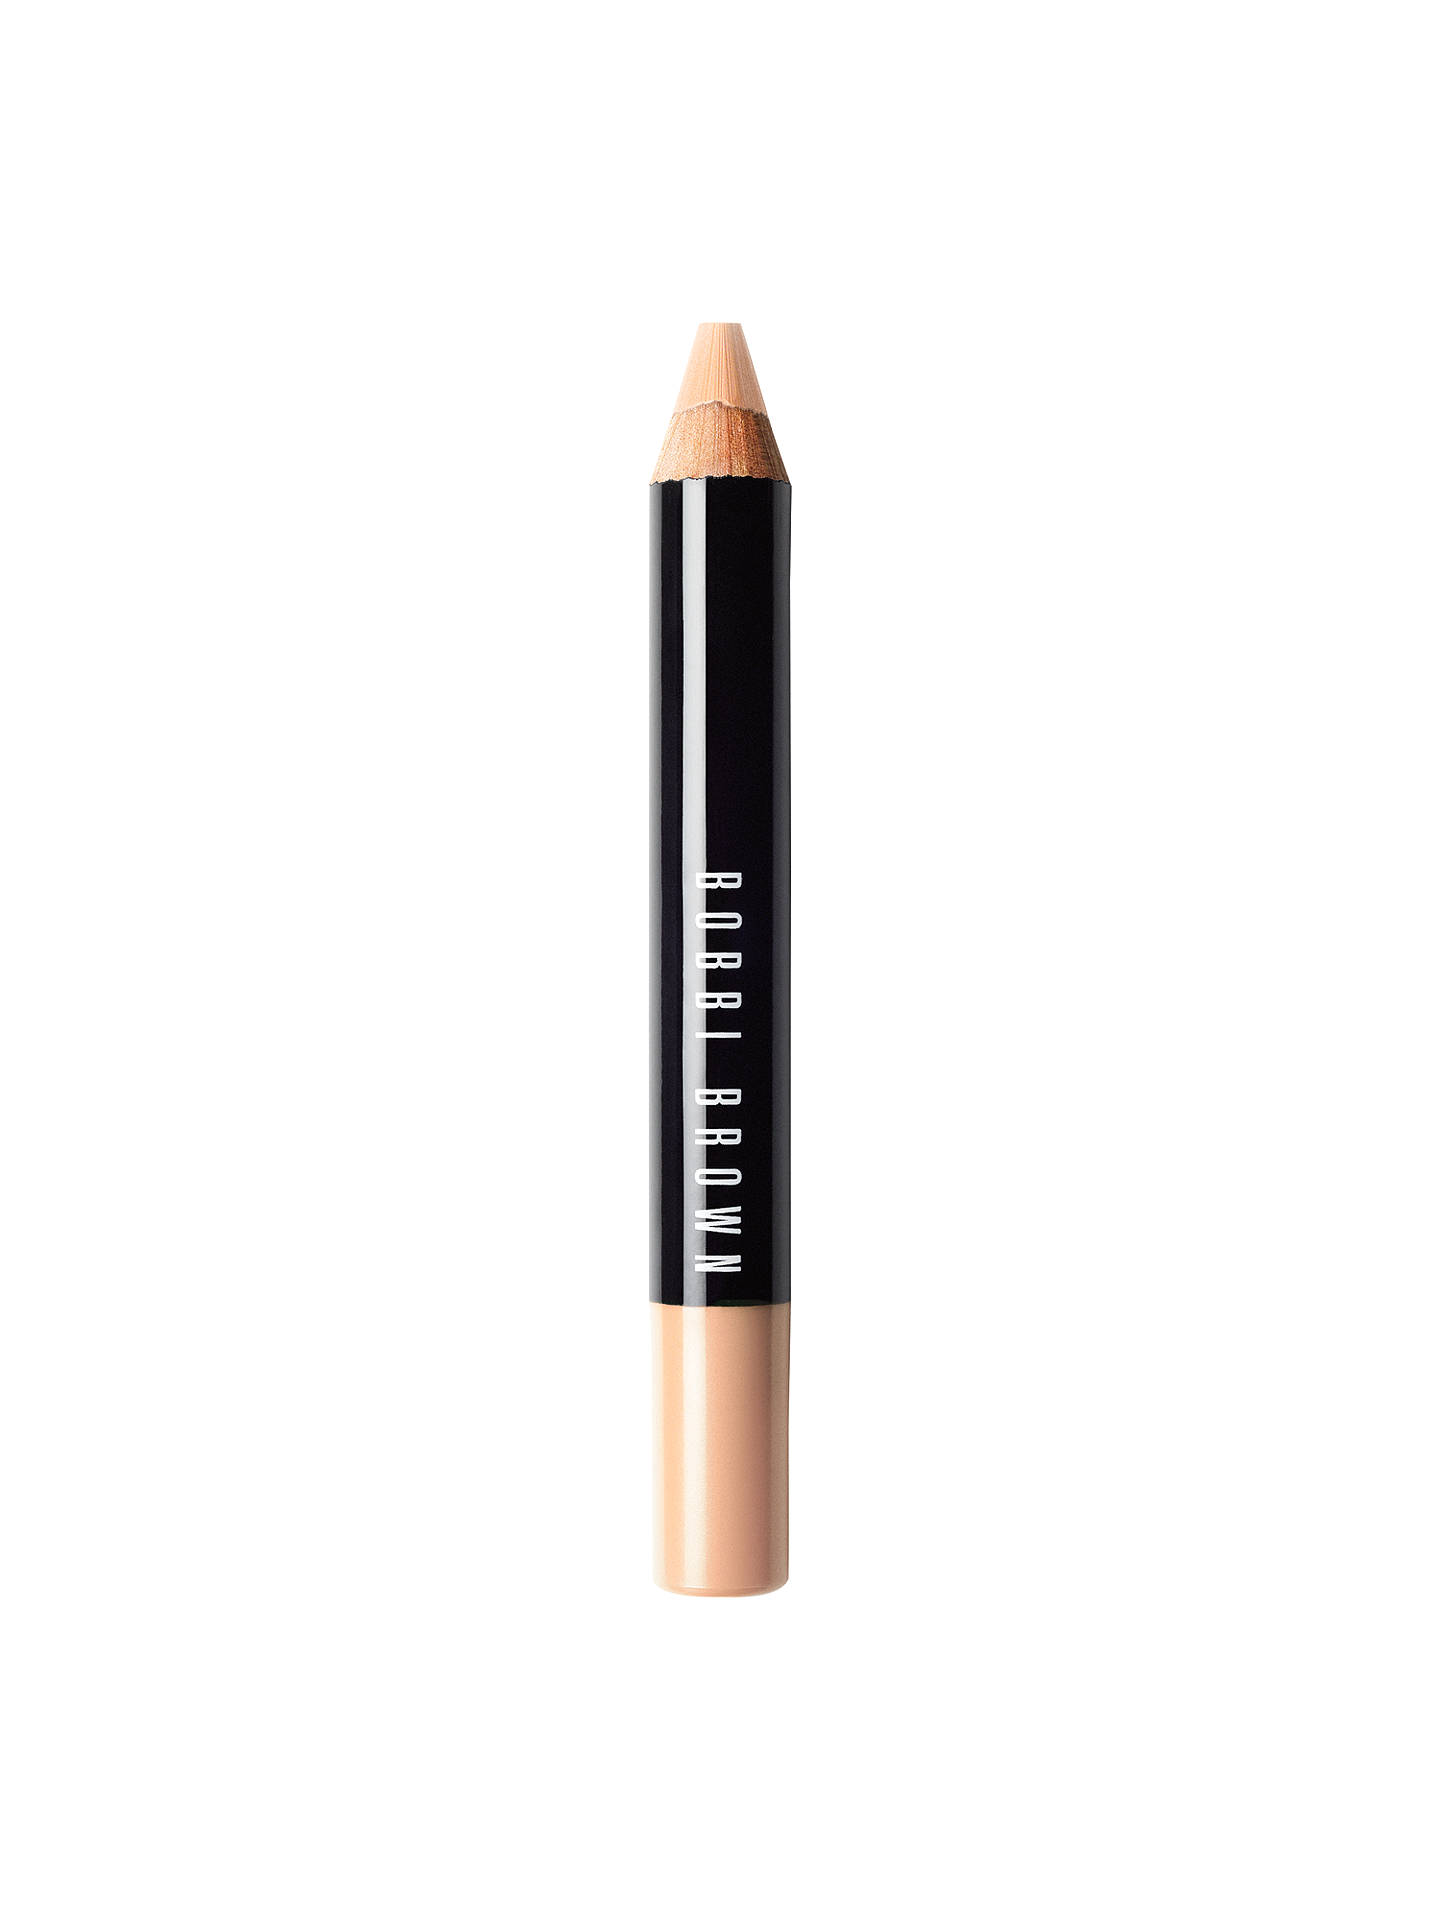 BuyBobbi Brown Retouching Face Pencil, Dark Online at johnlewis.com